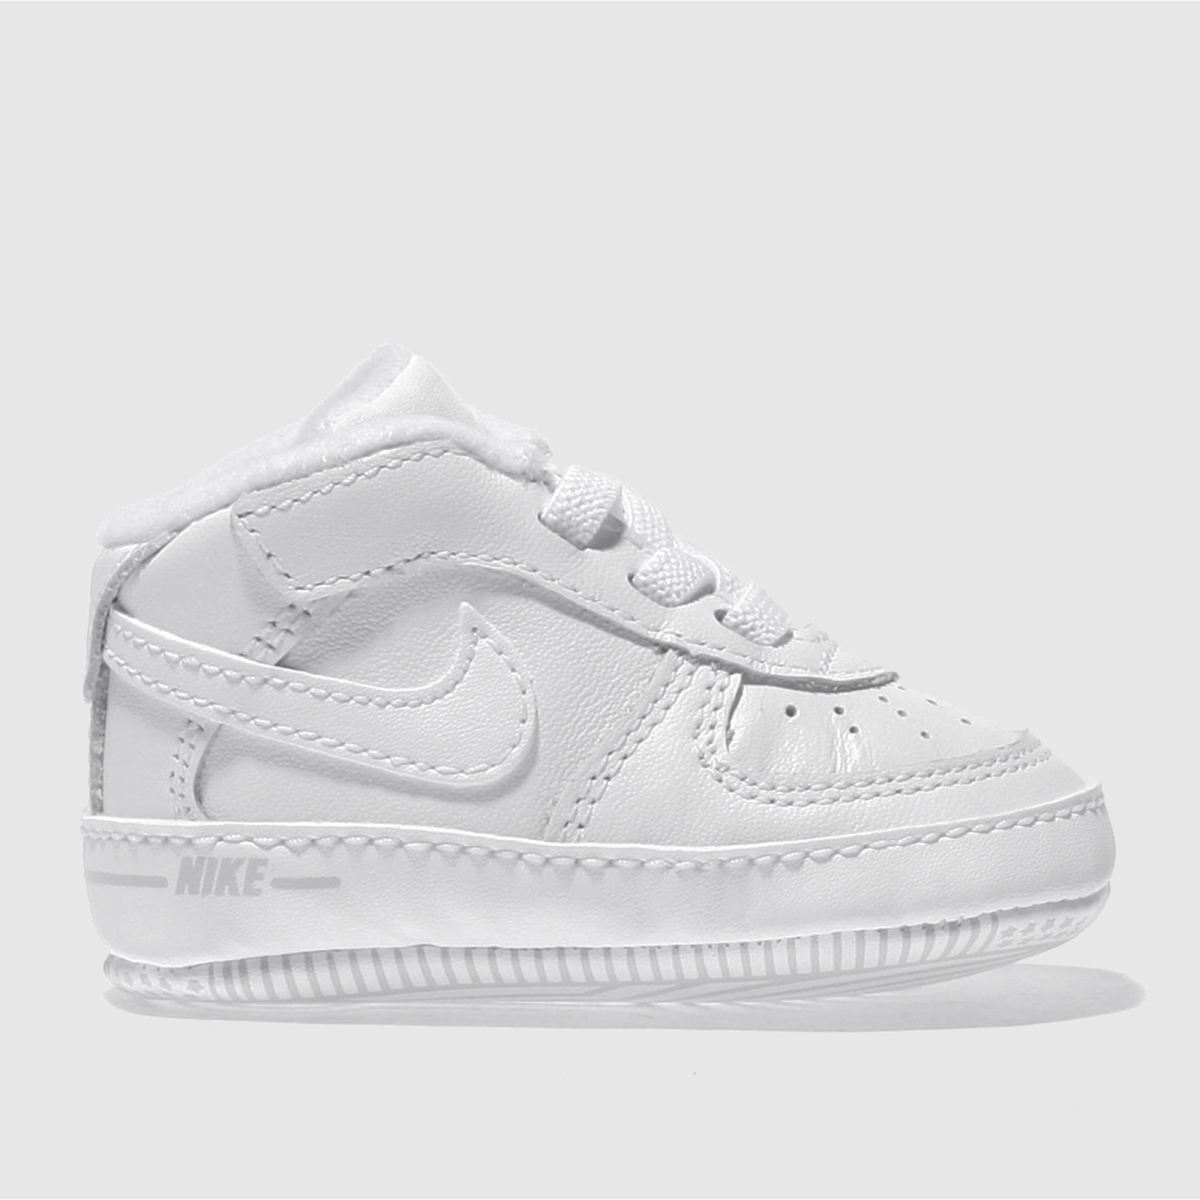 b2d4ca7e4c18 Kids Unisex white nike air force 1 shoes